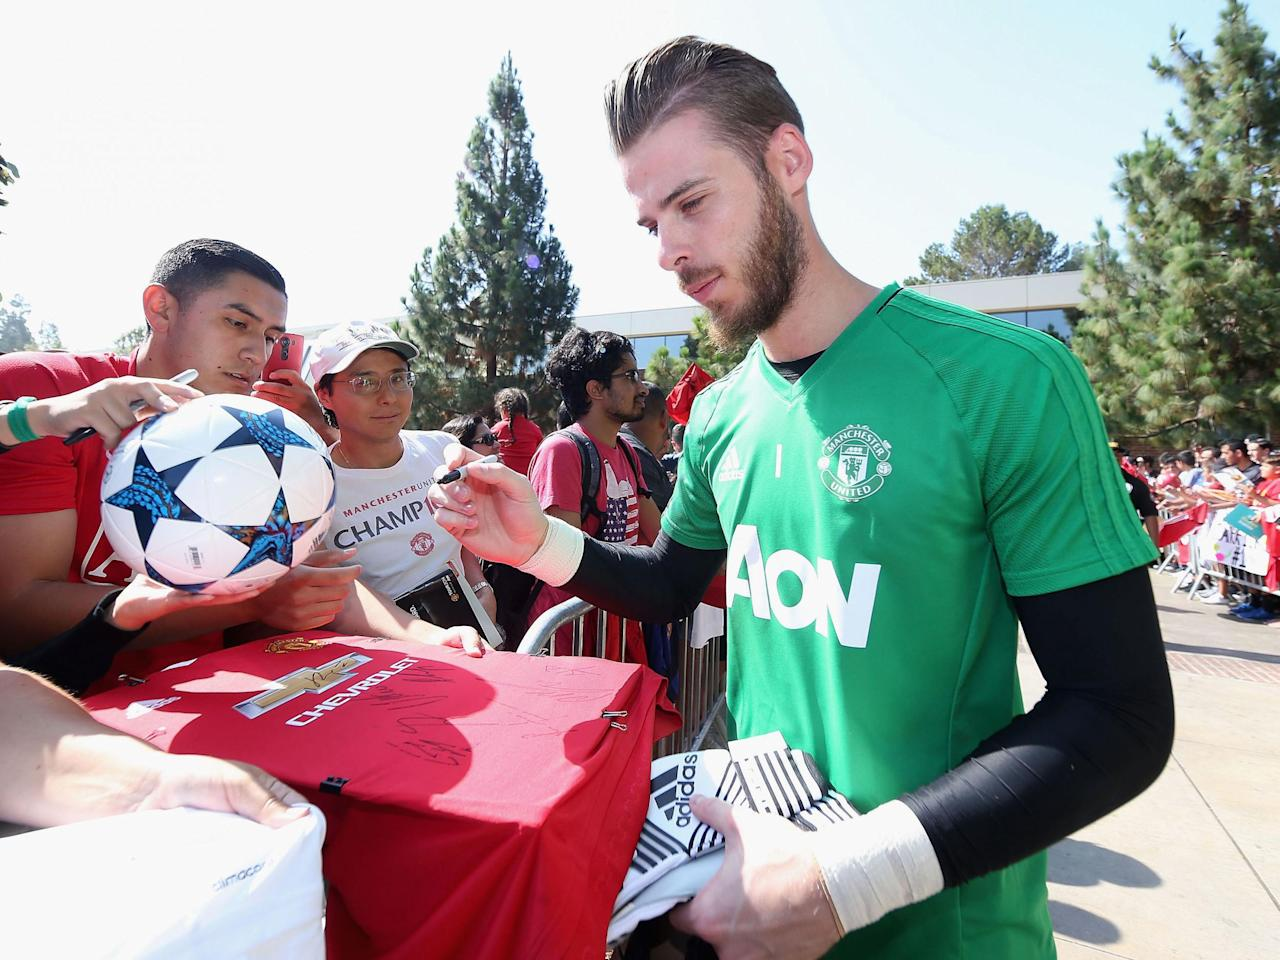 Manchester United 'open' to selling David De Gea this summer but Real Madrid pulled plug - Jose Mourinho